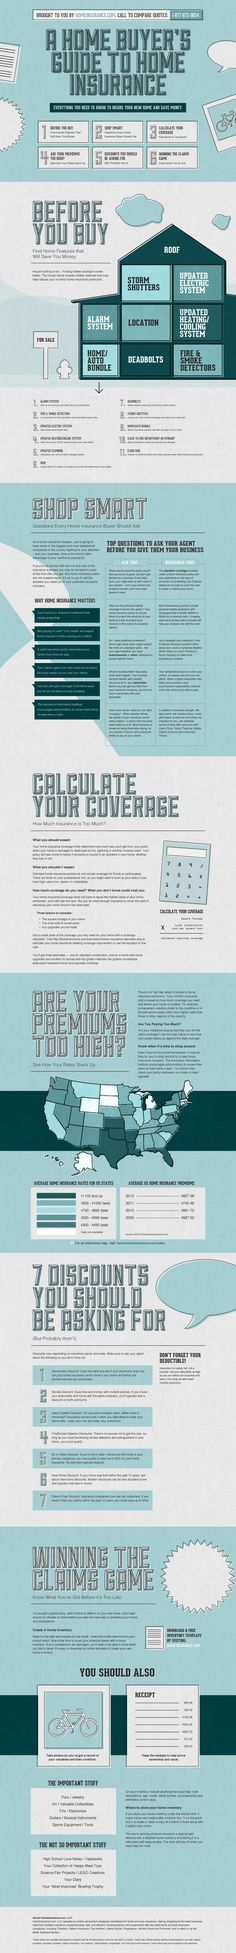 A Home Buyer's Guide To Home Insurance[INFOGRAPHIC]